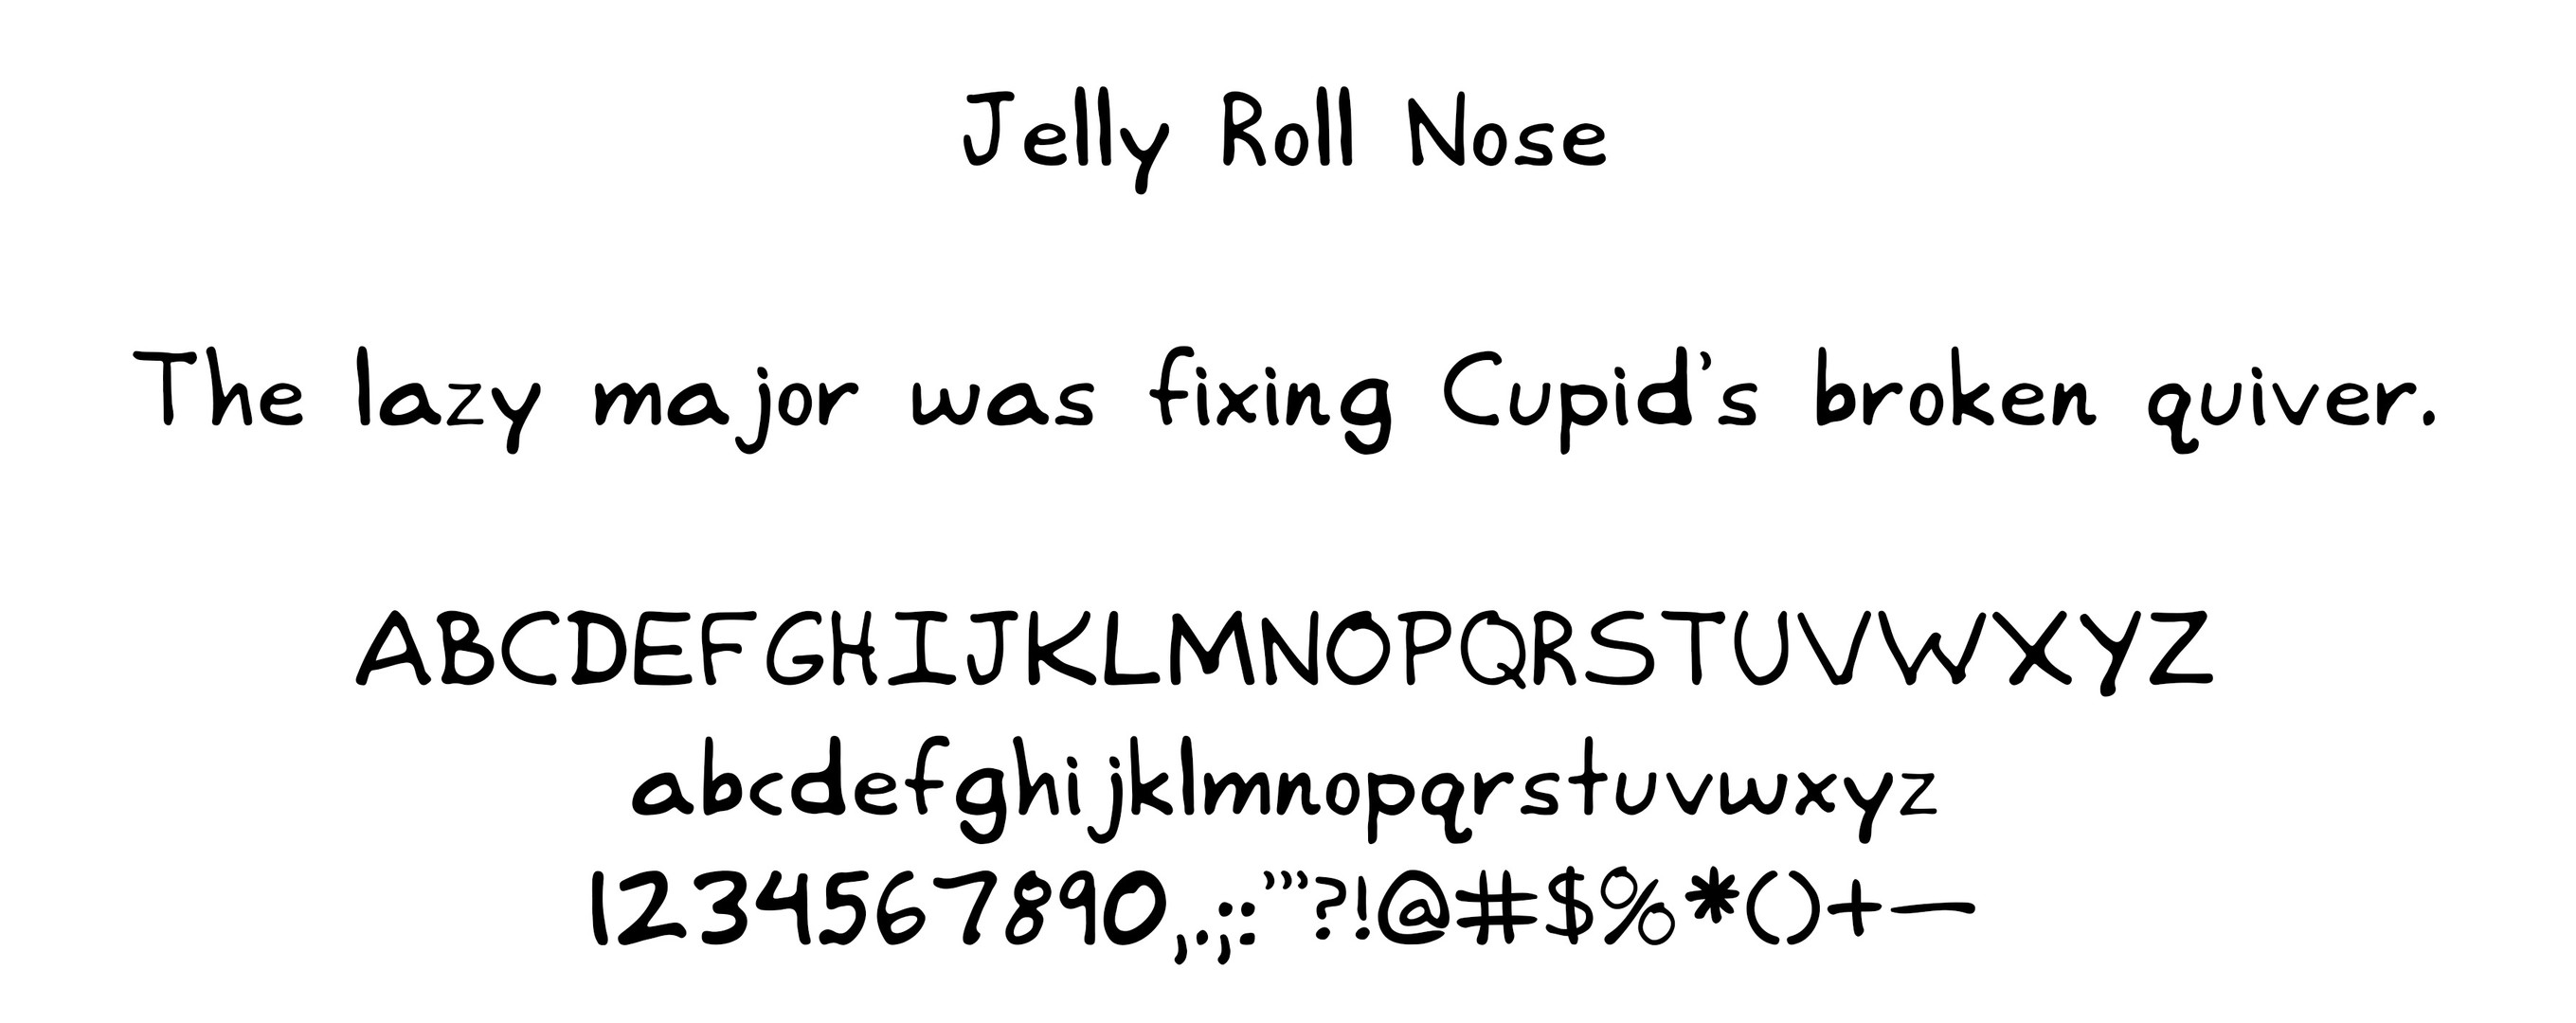 Jelly Roll Nose Typeface